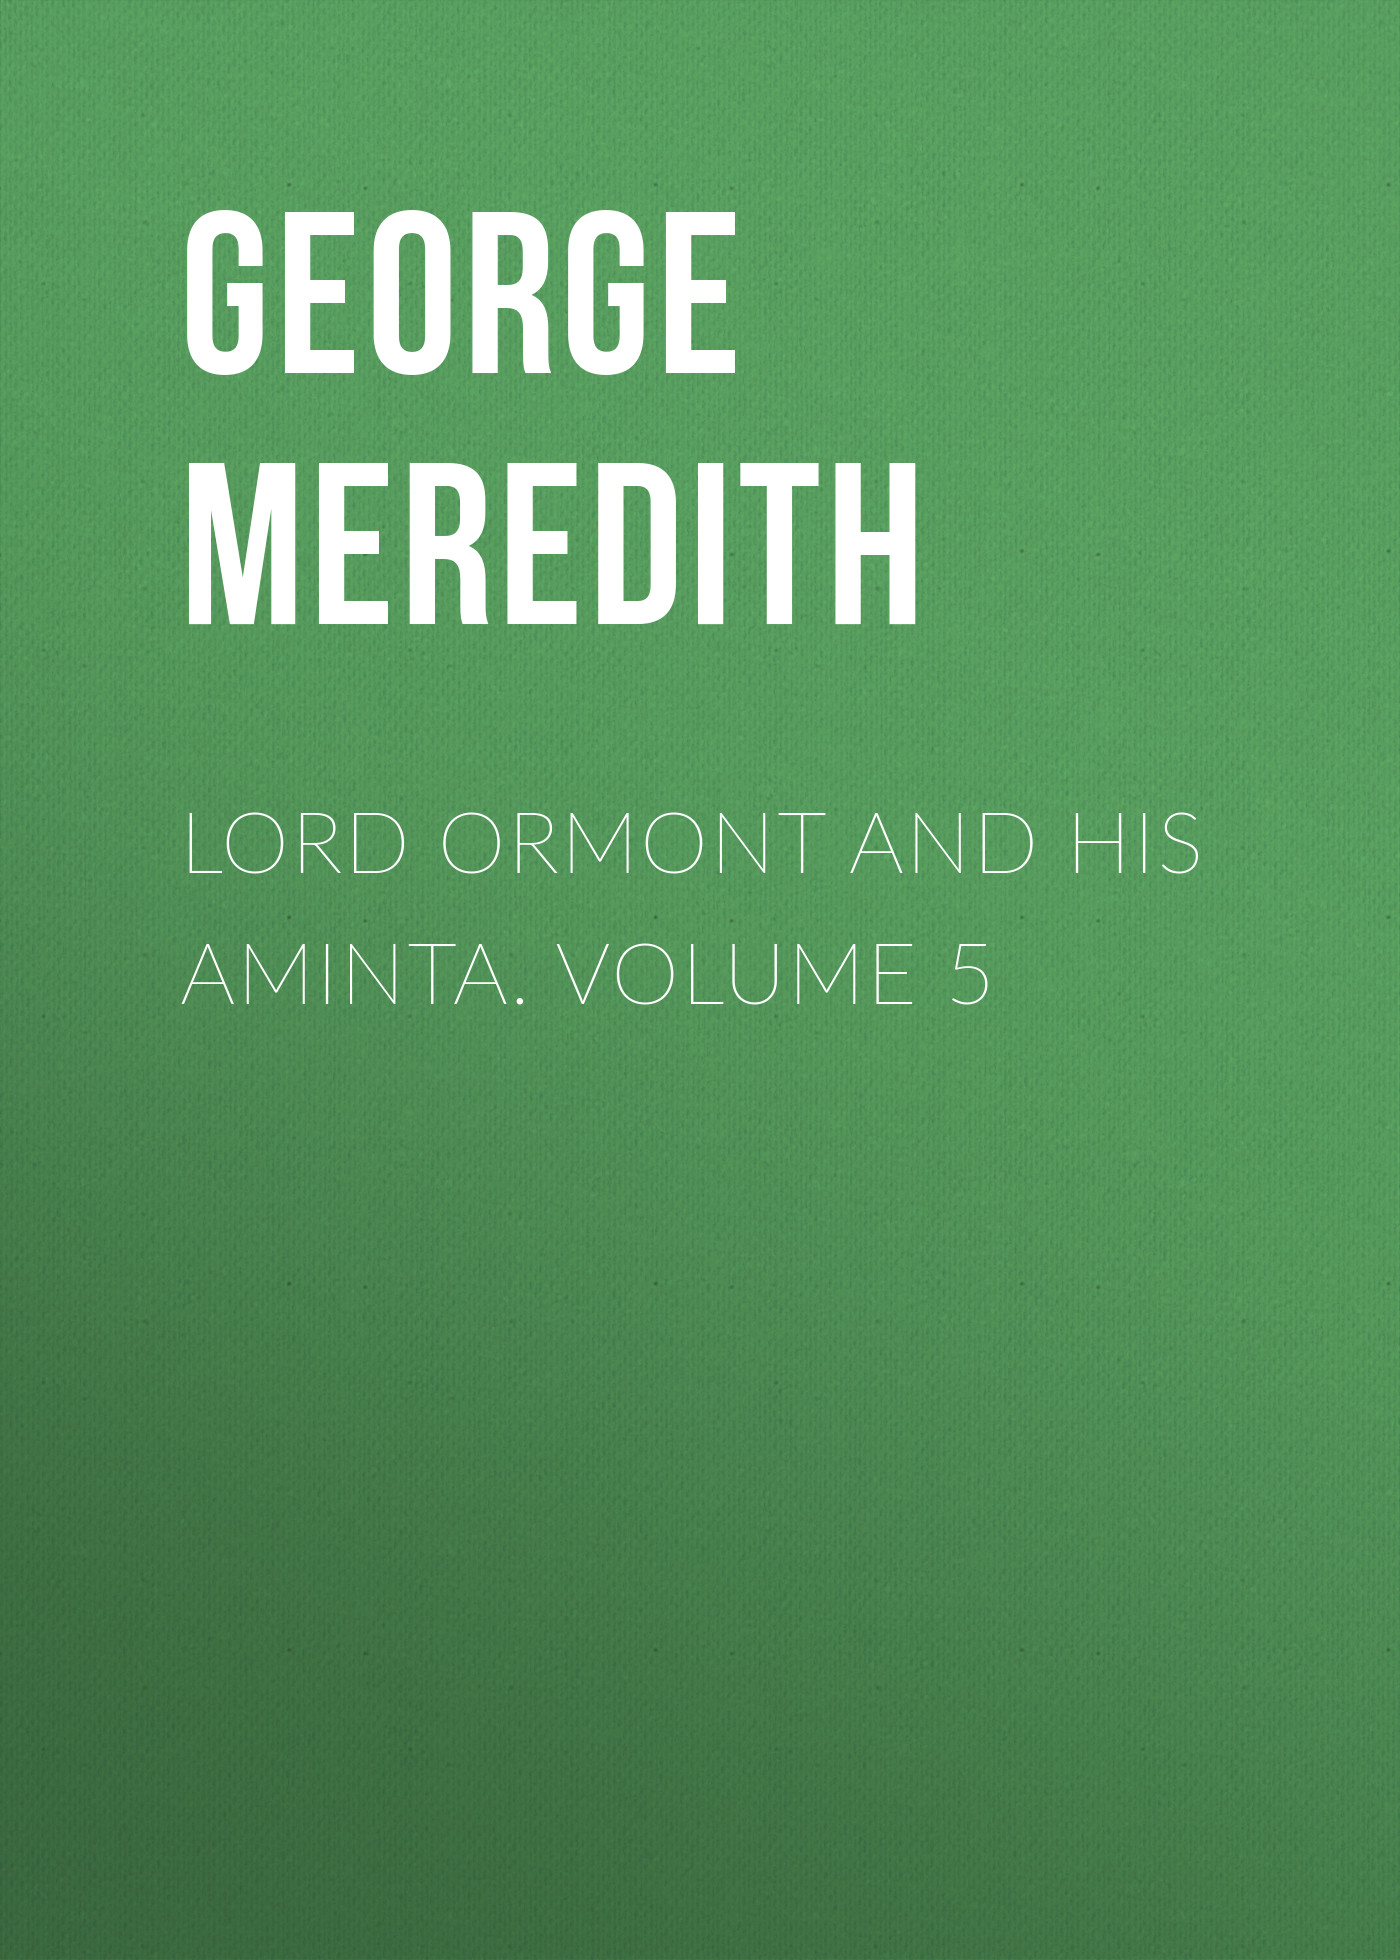 George Meredith Lord Ormont and His Aminta. Volume 5 george meredith lord ormont and his aminta volume 2